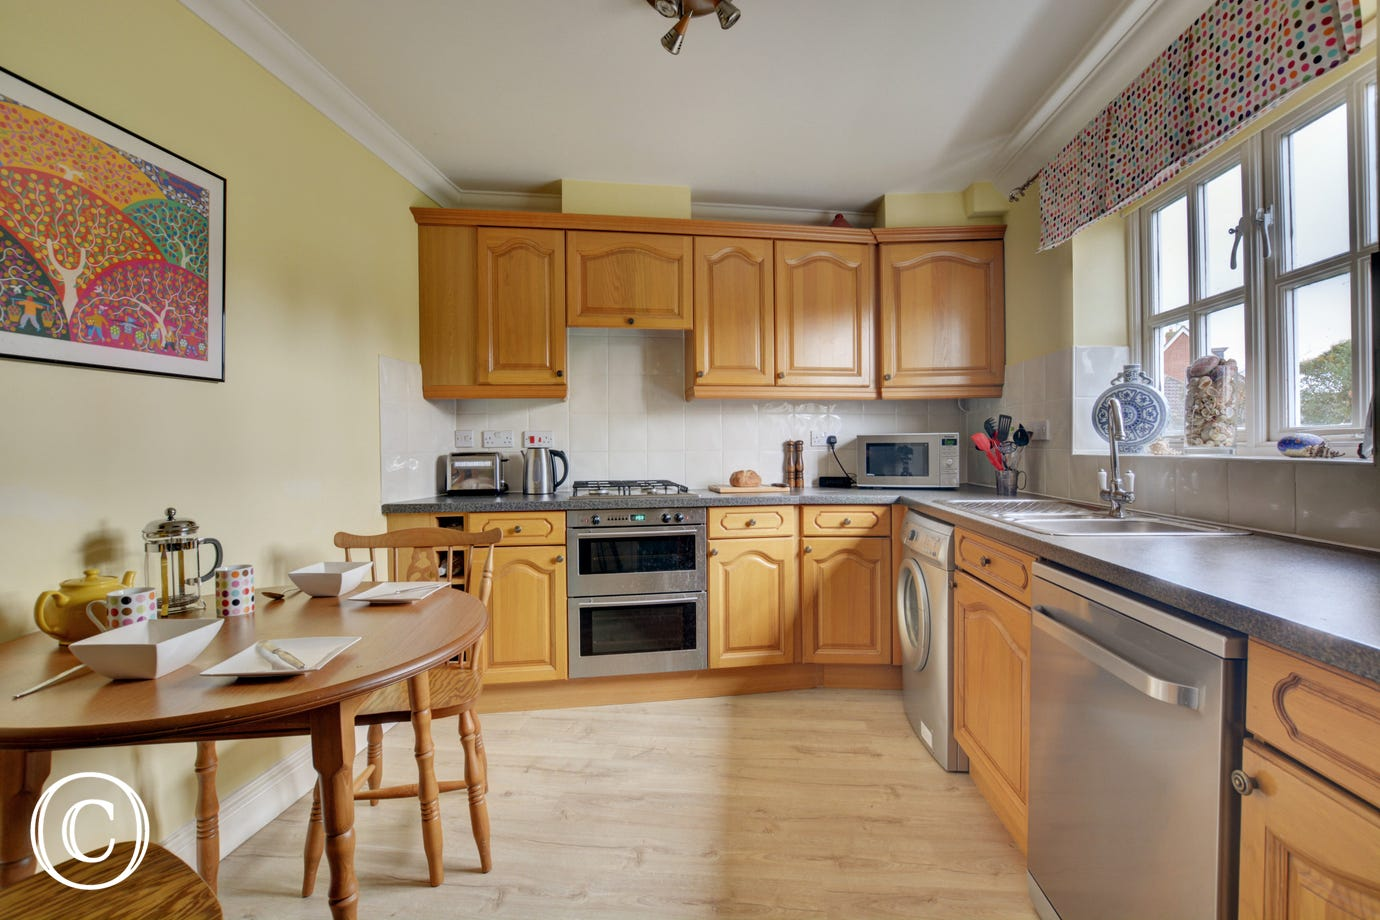 Fitted kitchen with gas hob, electric oven, fridge/freezer, microwave, dishwasher and washing machine